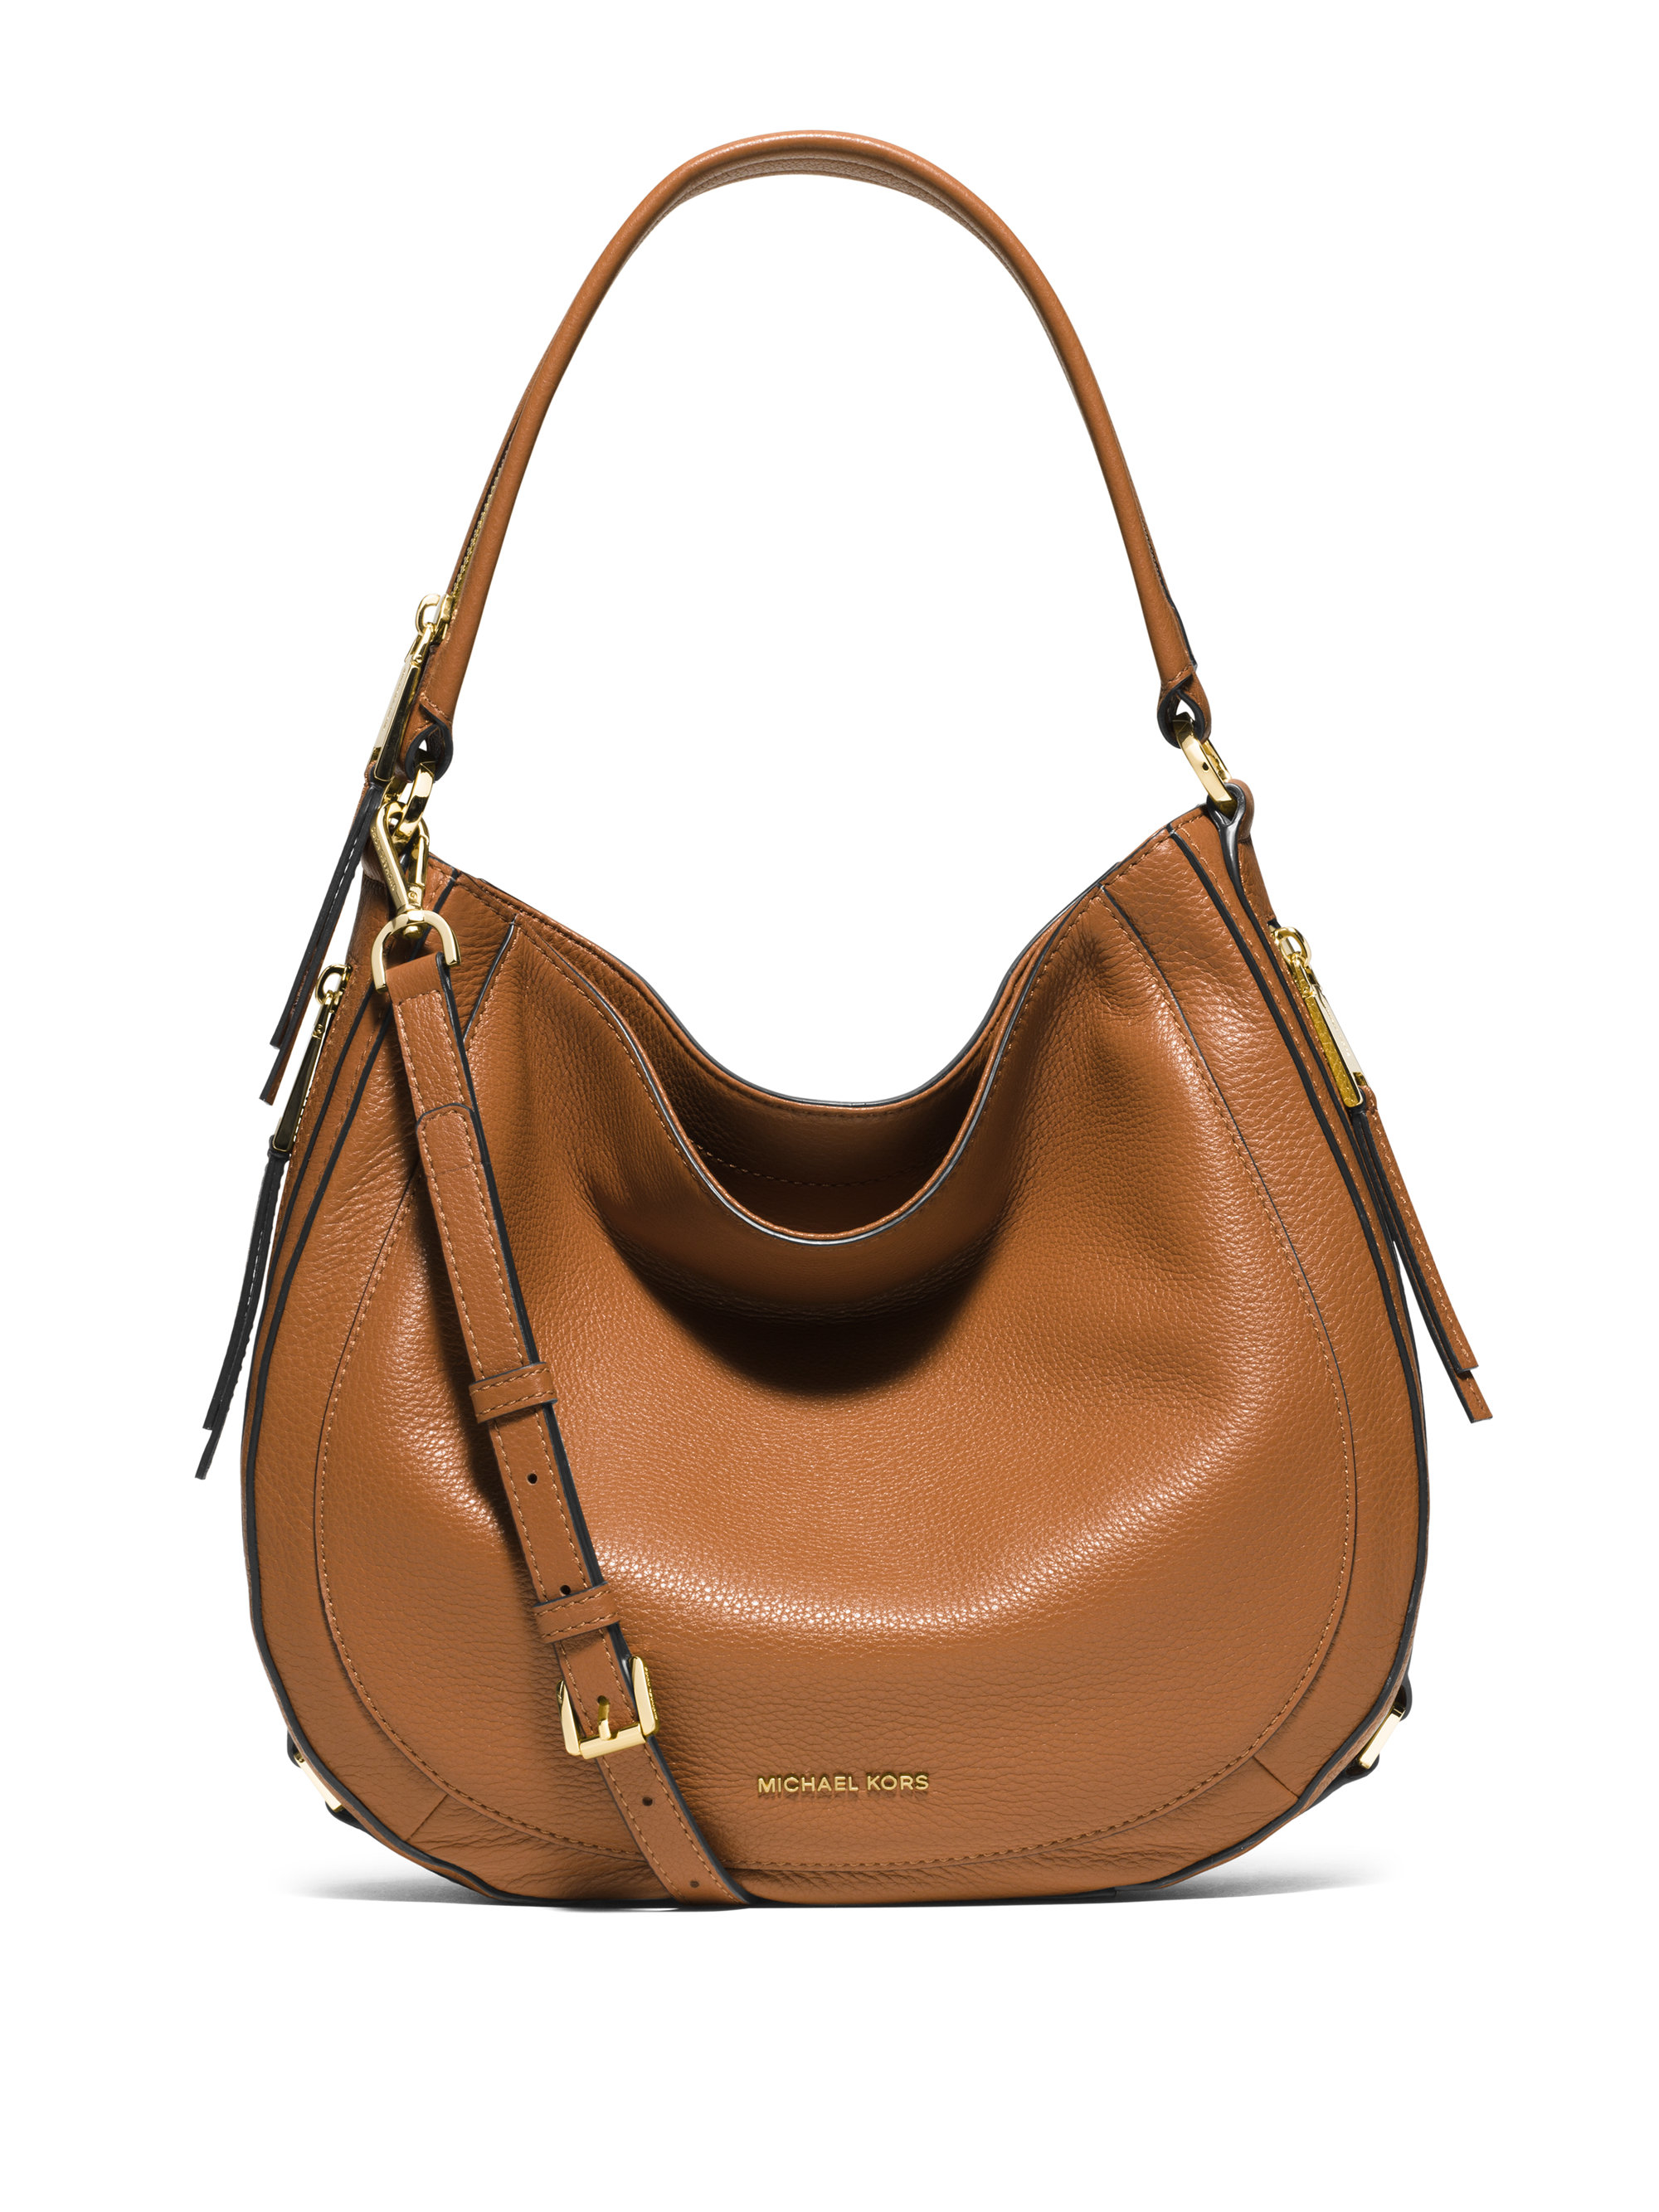 Michael michael kors Julia Medium Leather Hobo Bag in Brown | Lyst